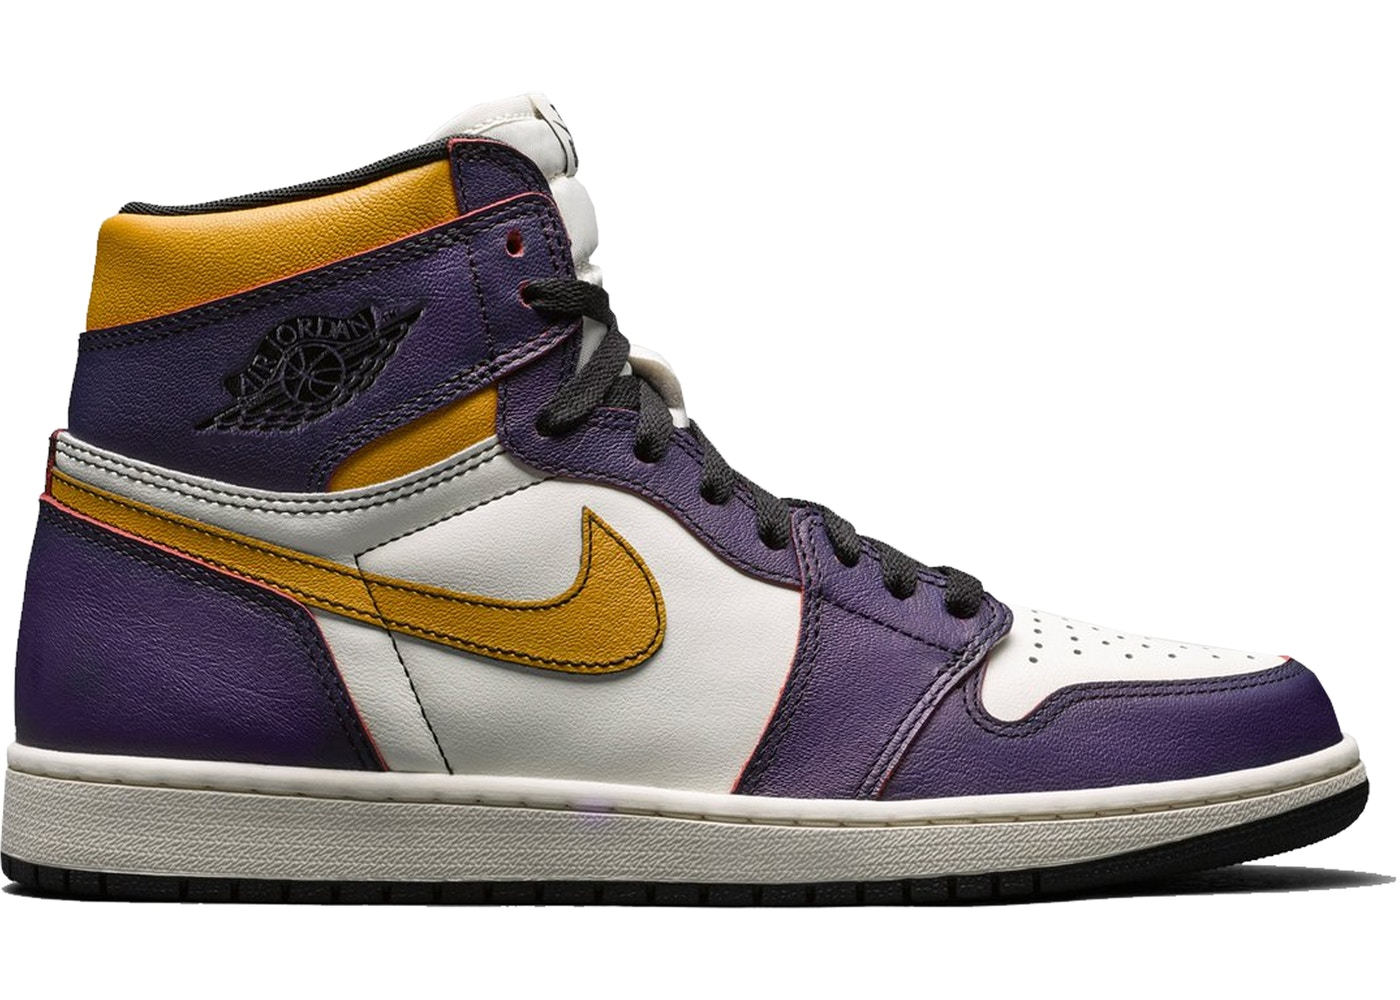 preview of genuine shoes superior quality Jordan 1 Retro High OG Defiant SB Lakers • Buy/Sell StockX